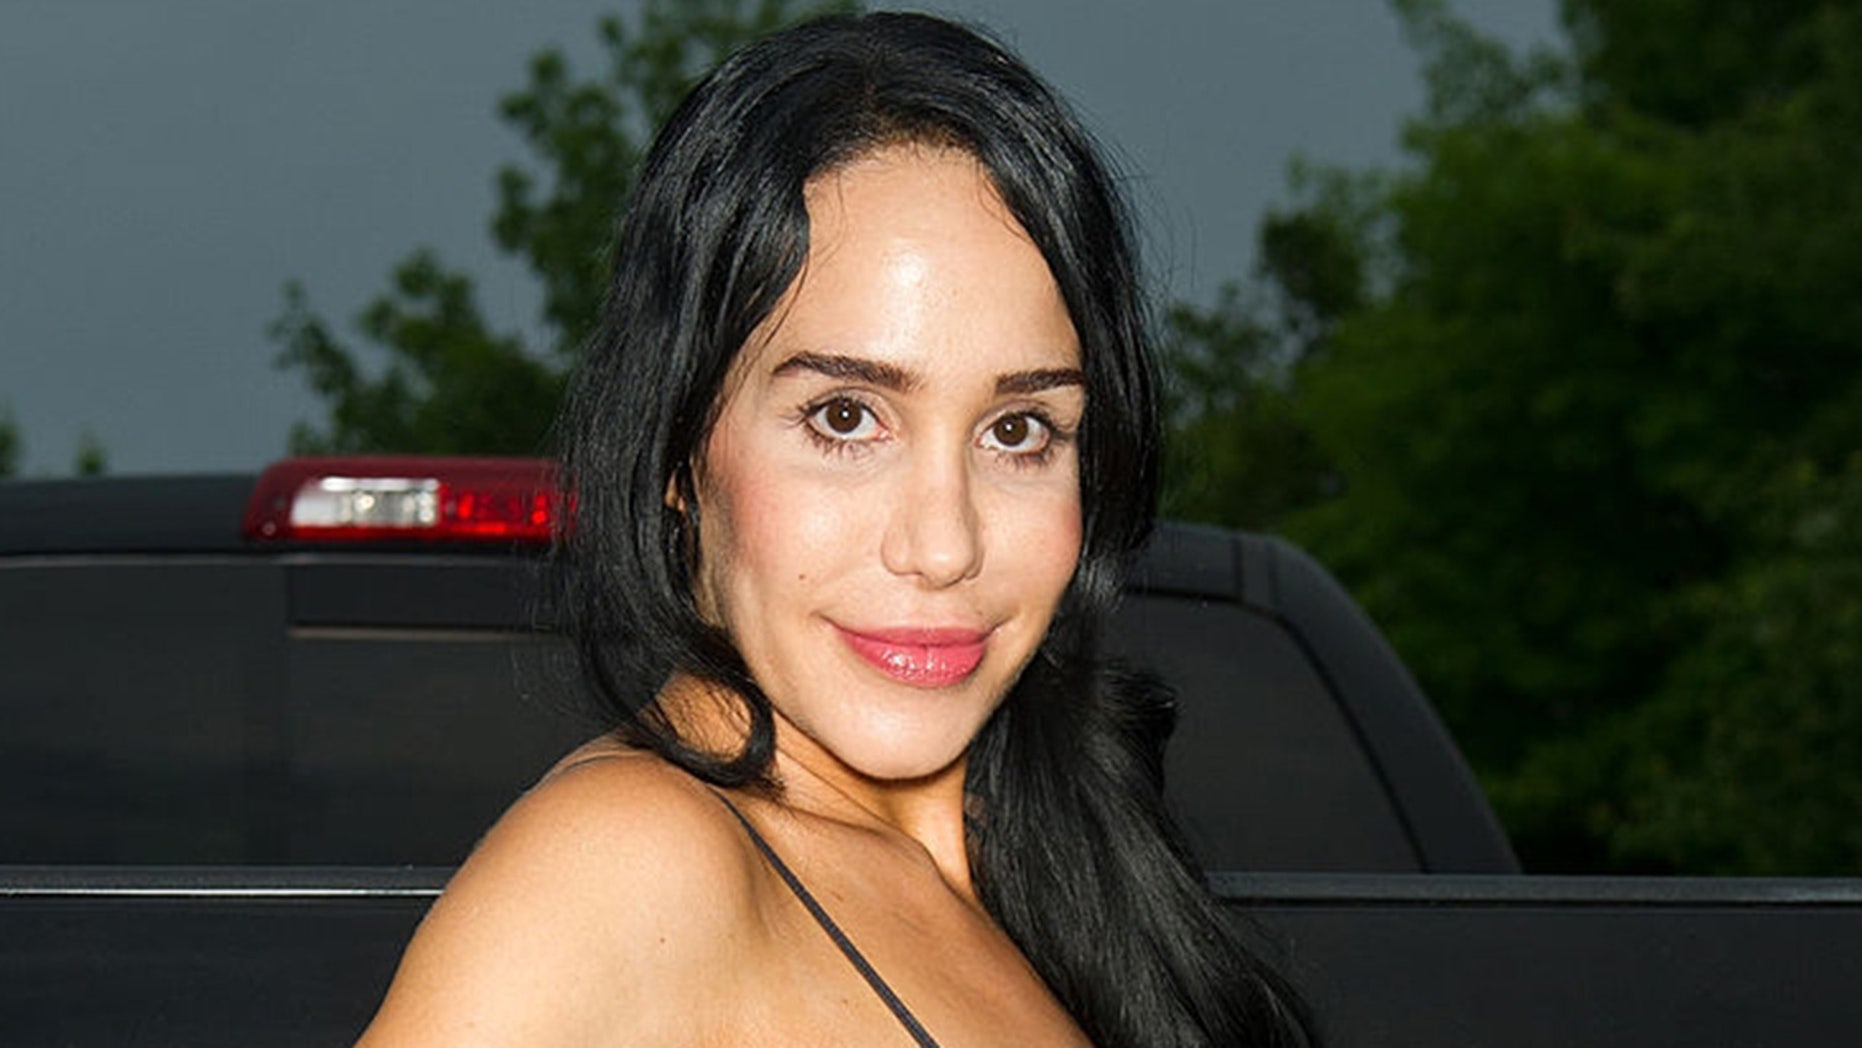 Octomom Nadya Suleman Opens Up About Her Porn Past I Hit -6647